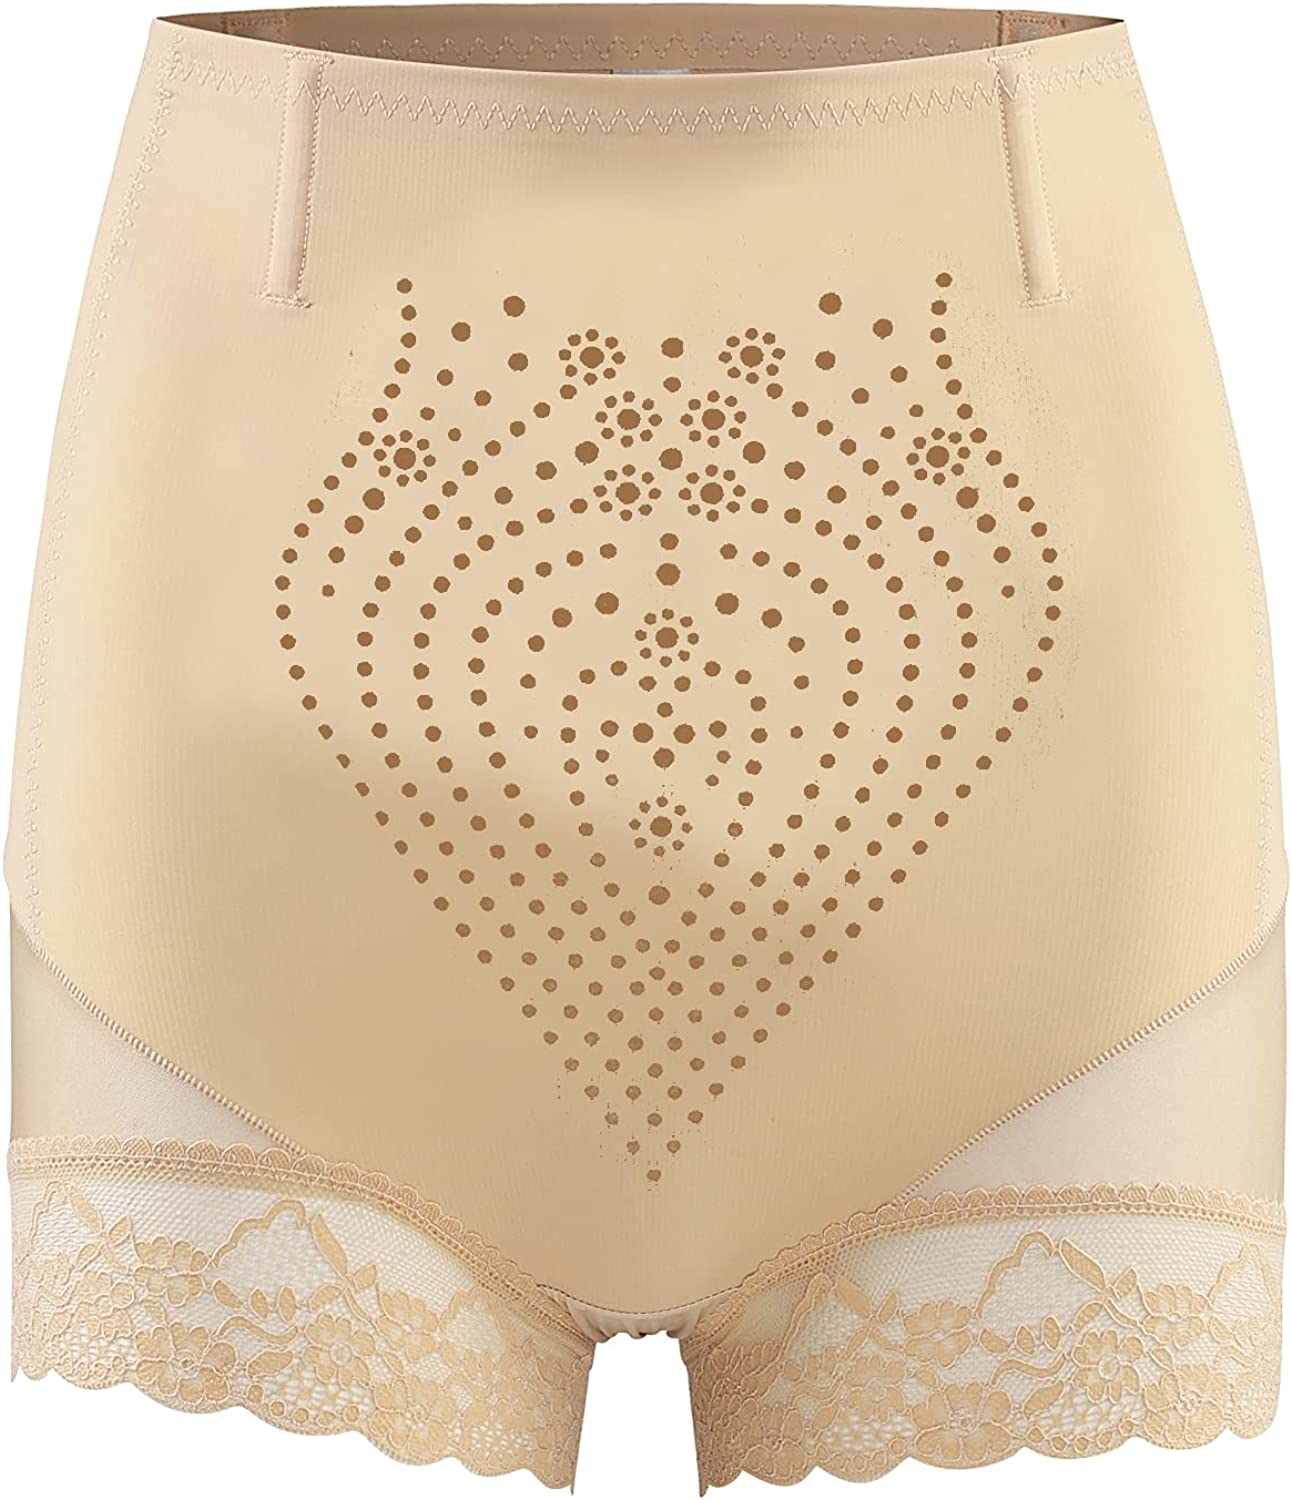 Women Butt Lifter Shapewear High Tummy Waisted Panty Tra Control Fort Worth Mall Super popular specialty store